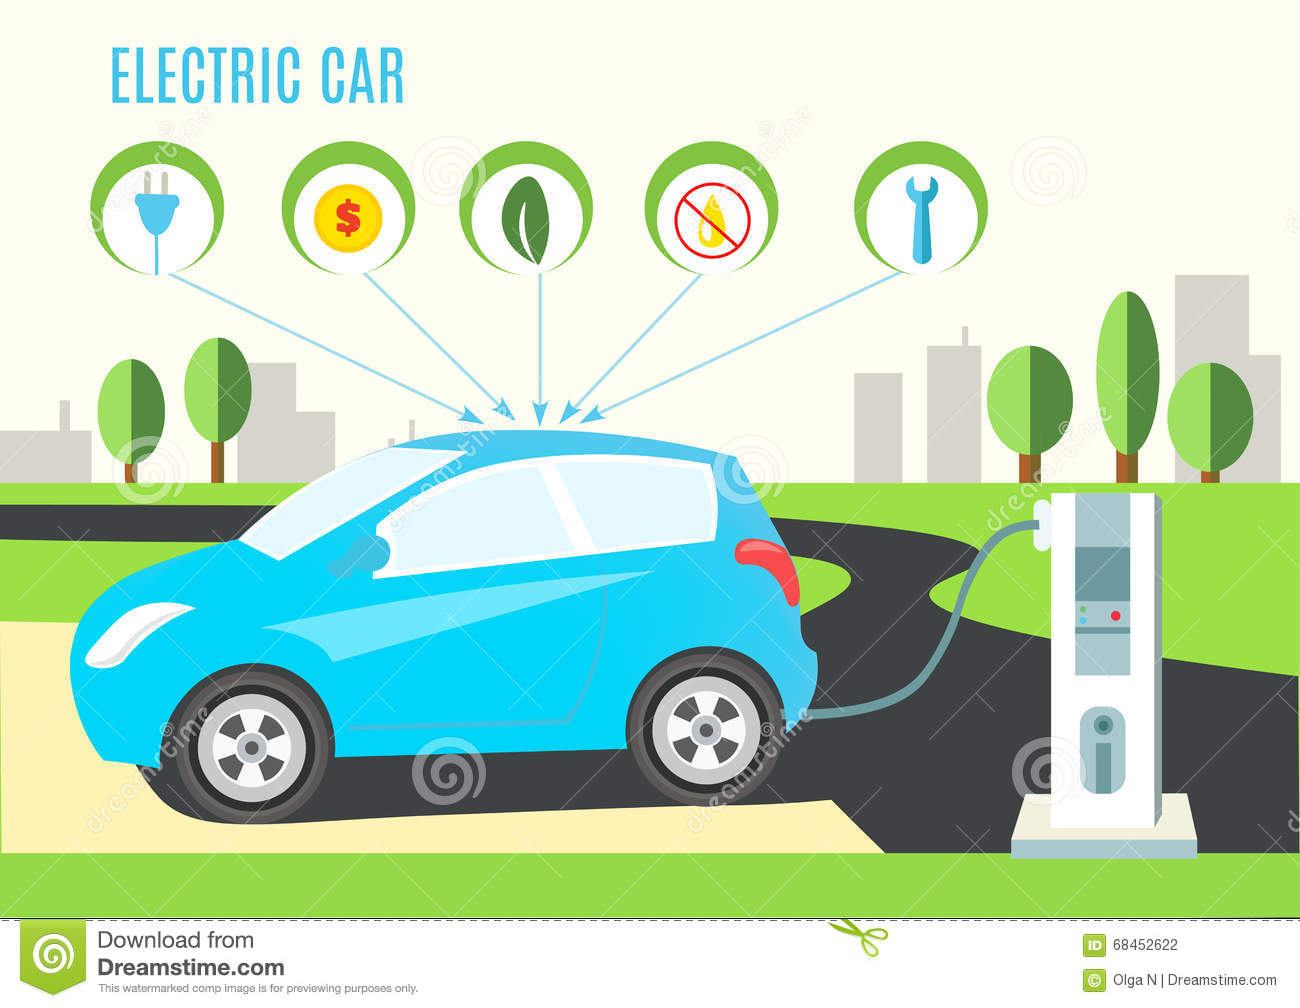 For Electric And Hybrid Vehicles Electric Blue Hybrid Car Charging Illustration On The Road And